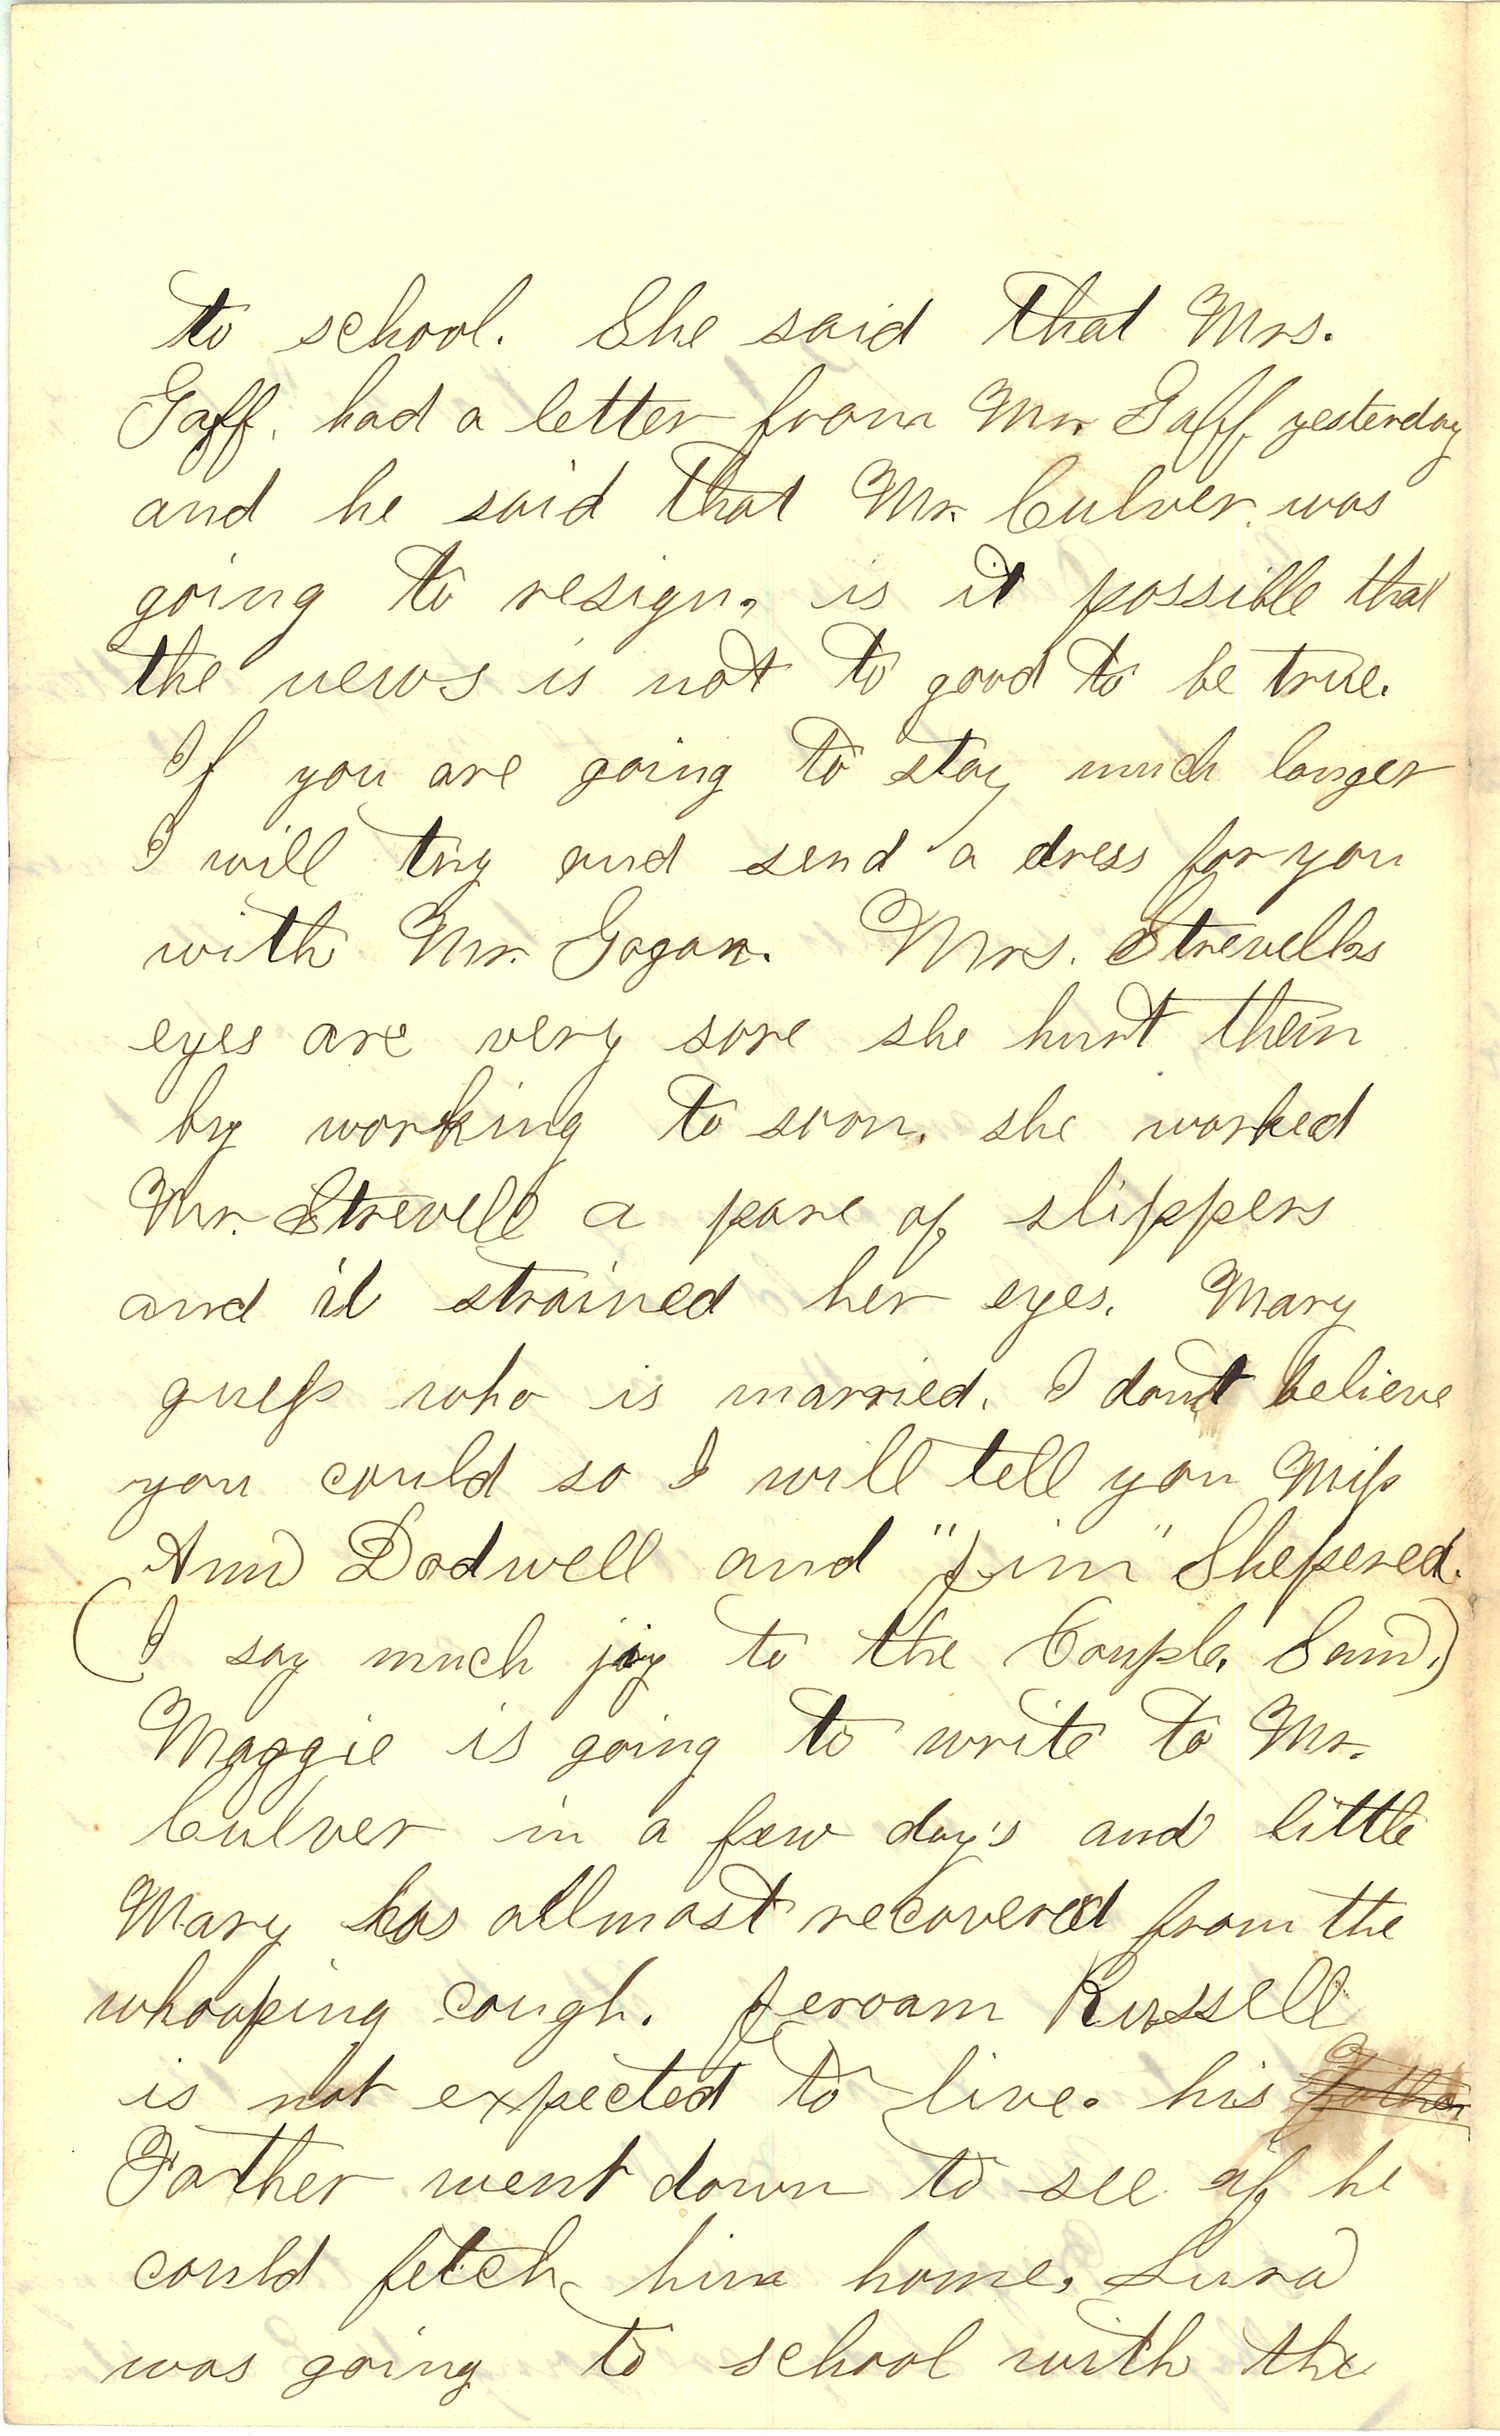 Joseph Culver Letter, March 20, 1863, Page 2